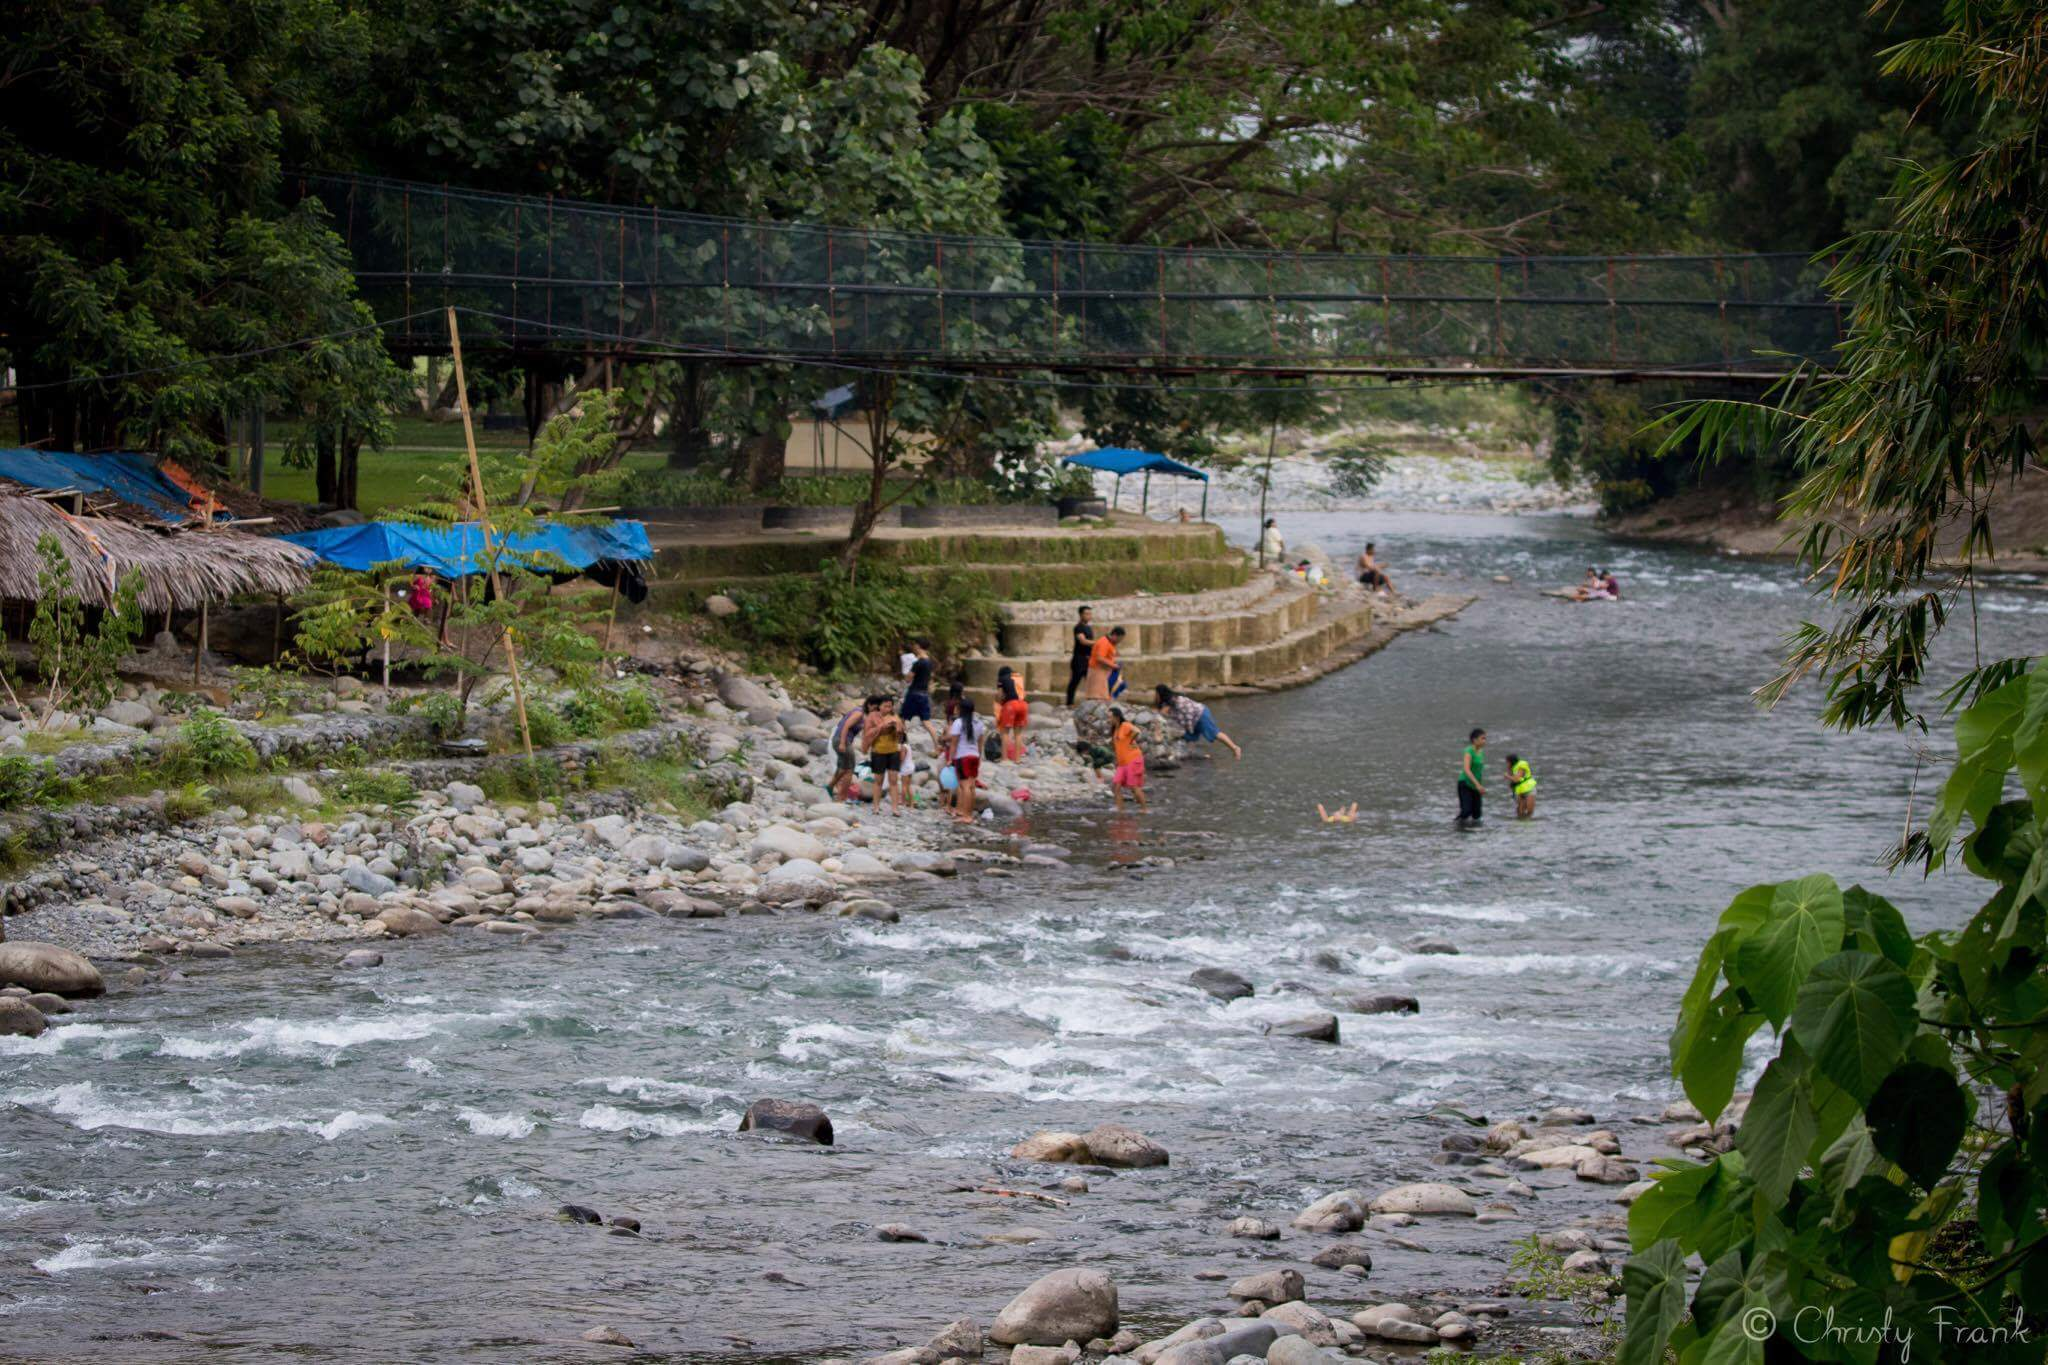 BUKIT LAWANG: From Rehabilitation Center to Ecotourism